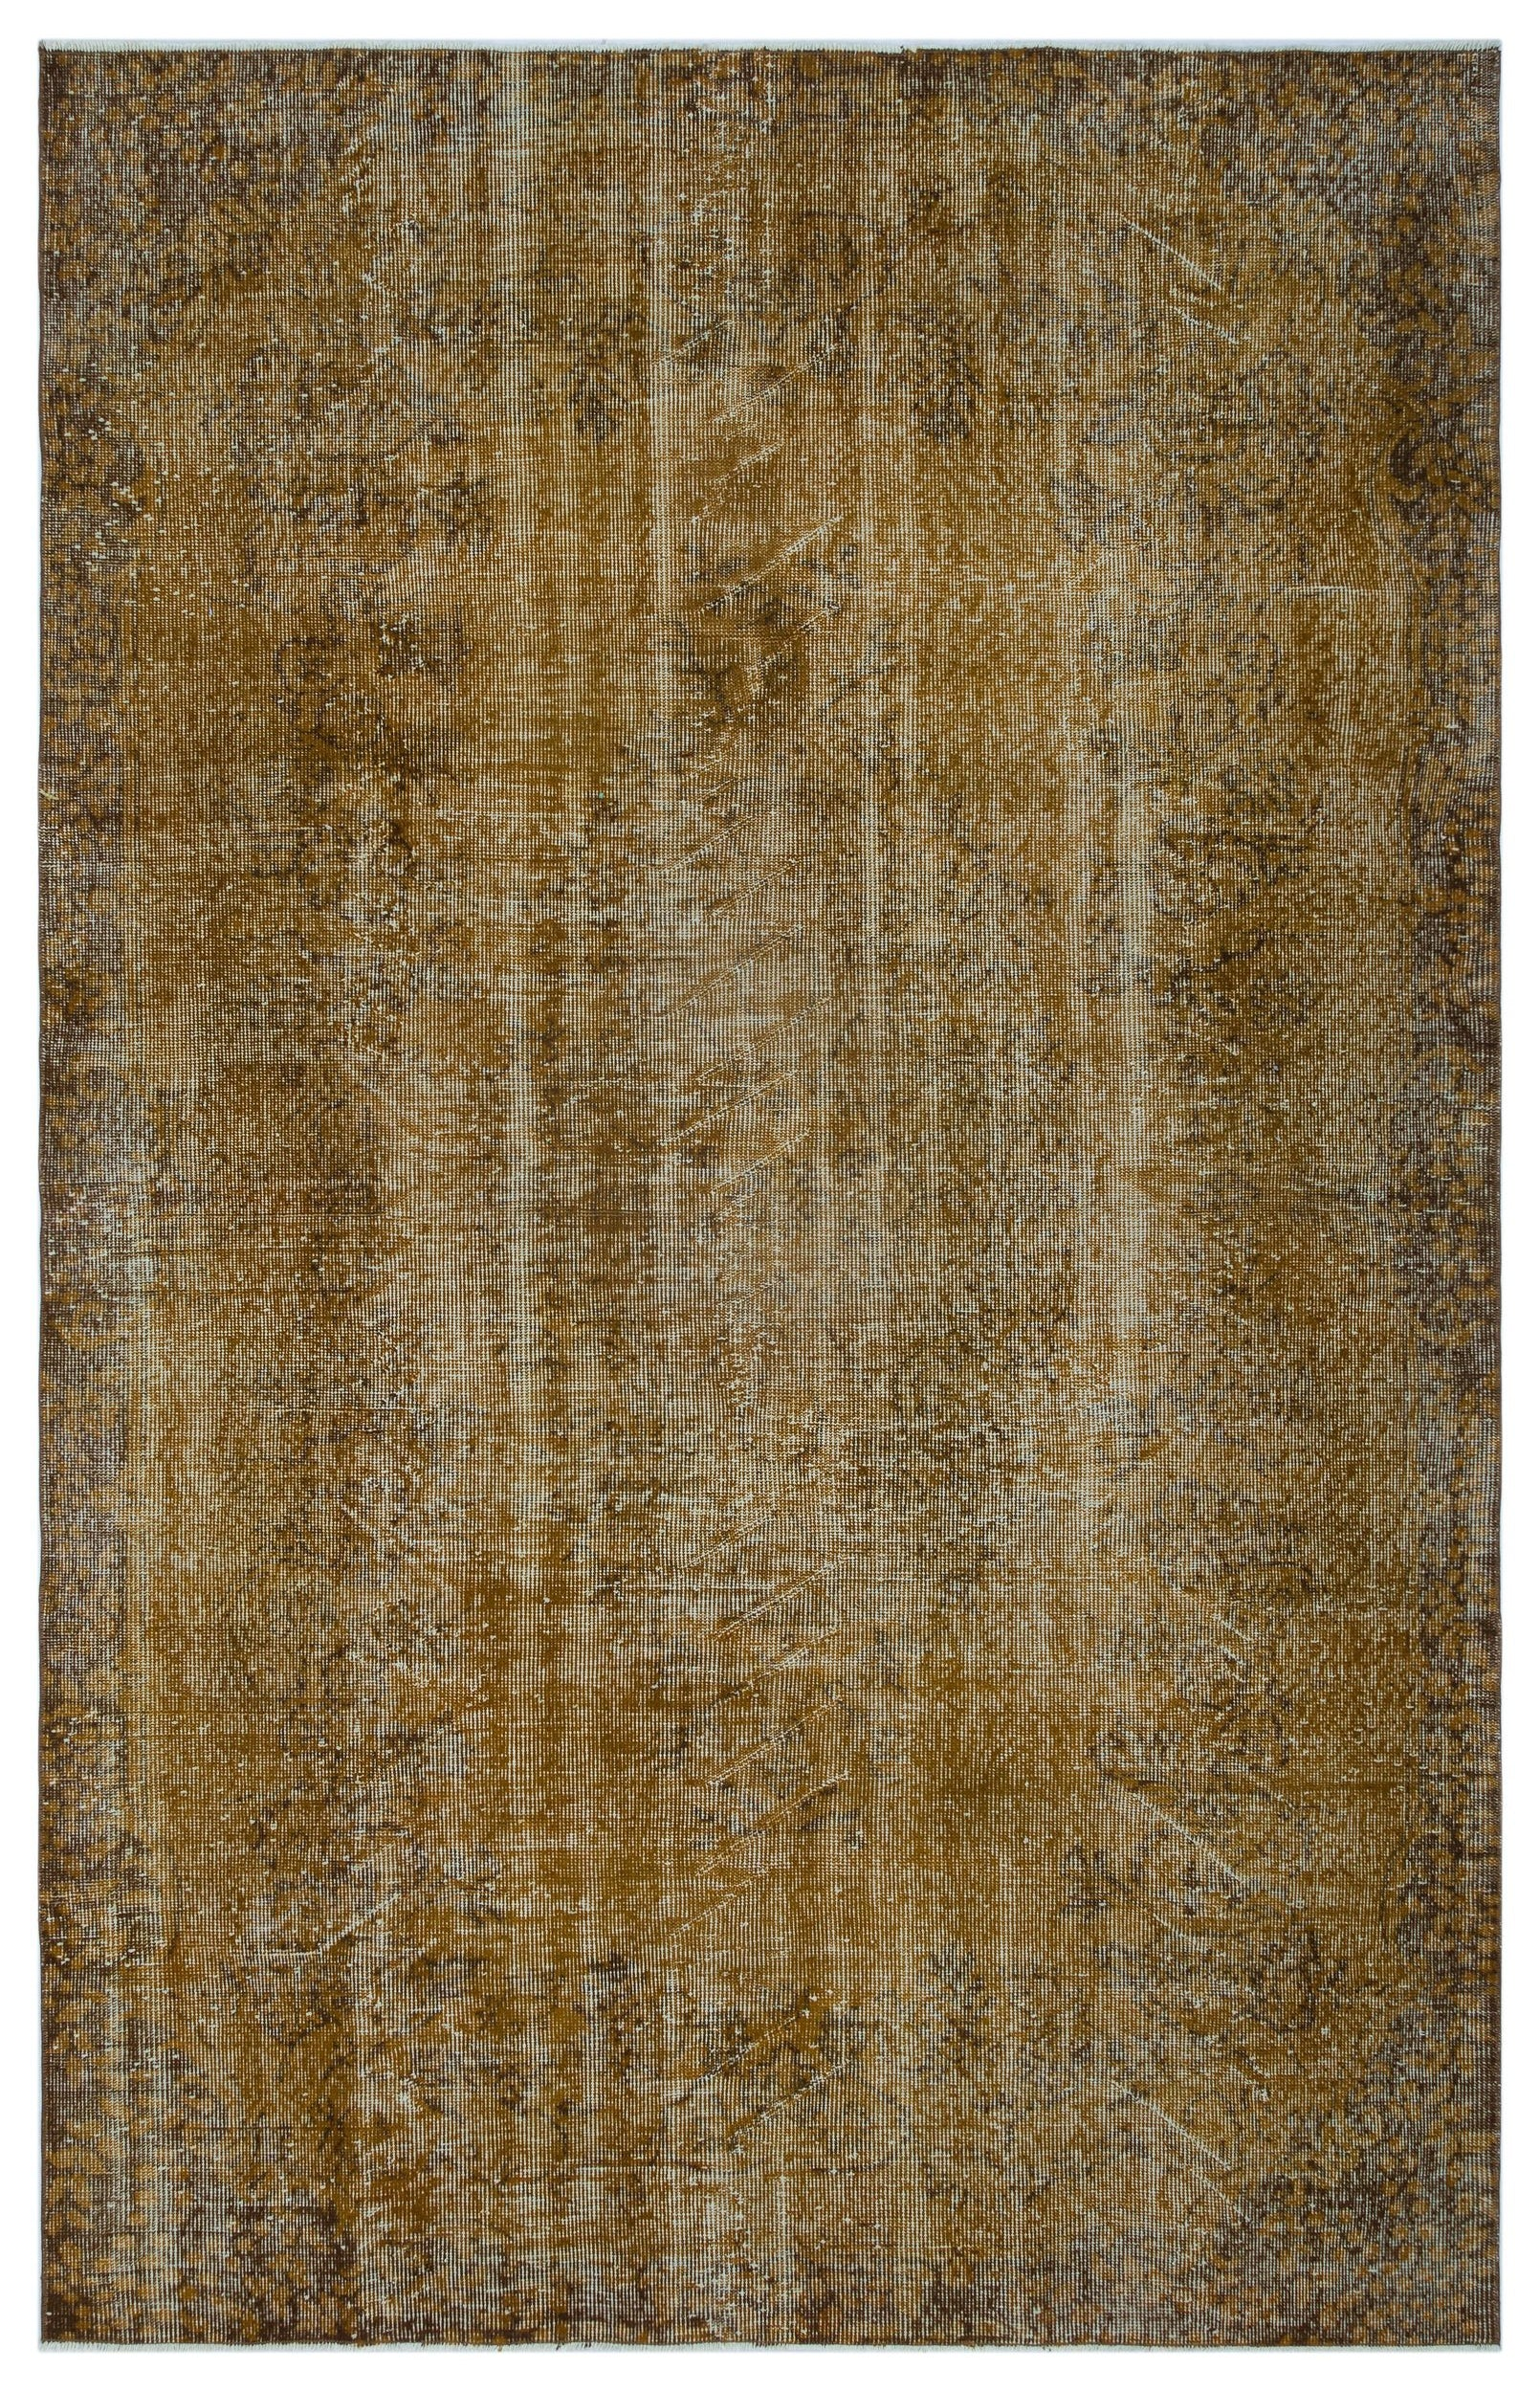 Brown Over Dyed Vintage Rug 5'11'' x 9'5'' ft 181 x 288 cm